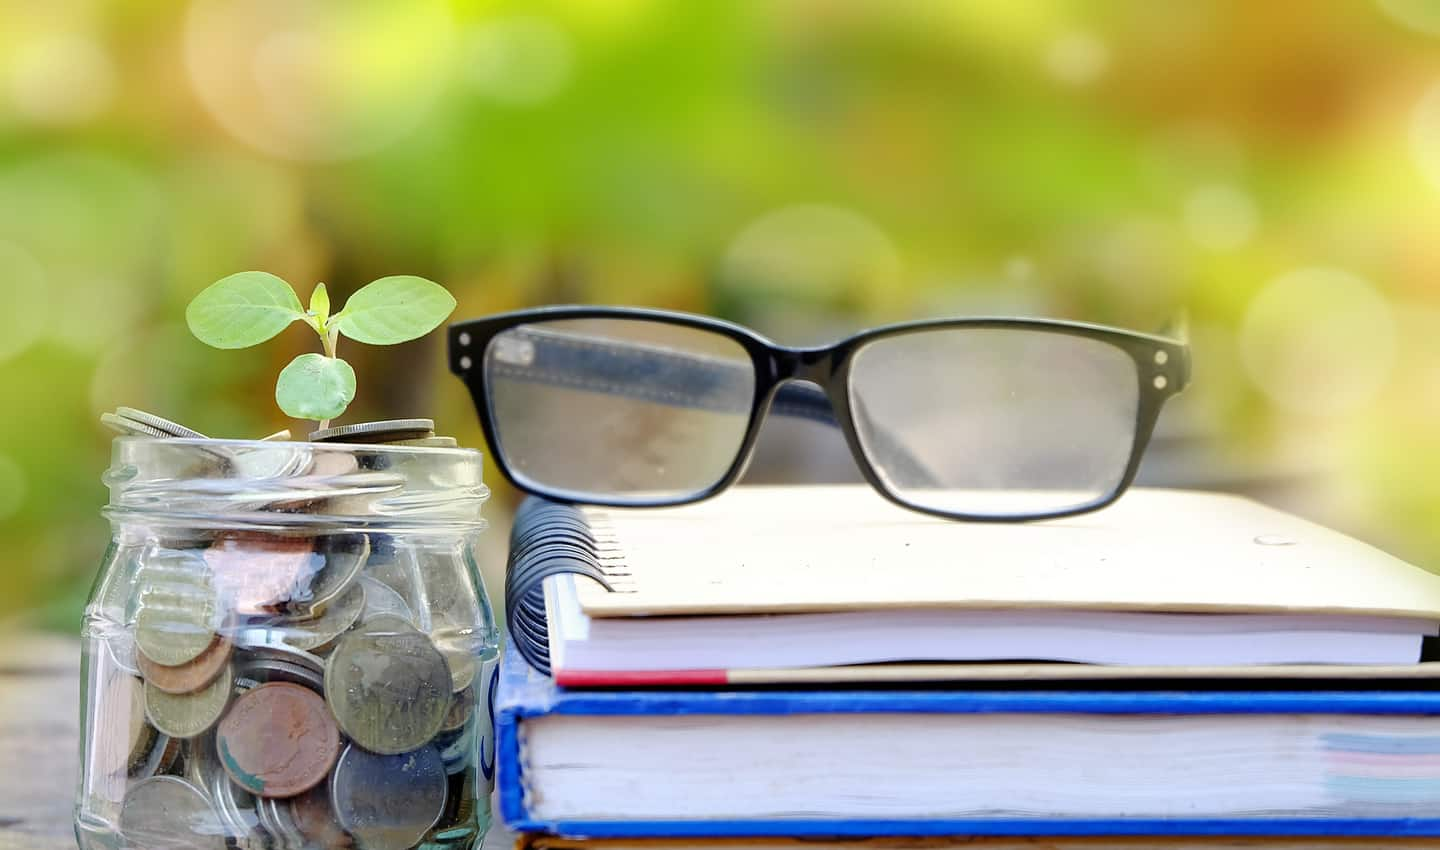 books glasses and coins